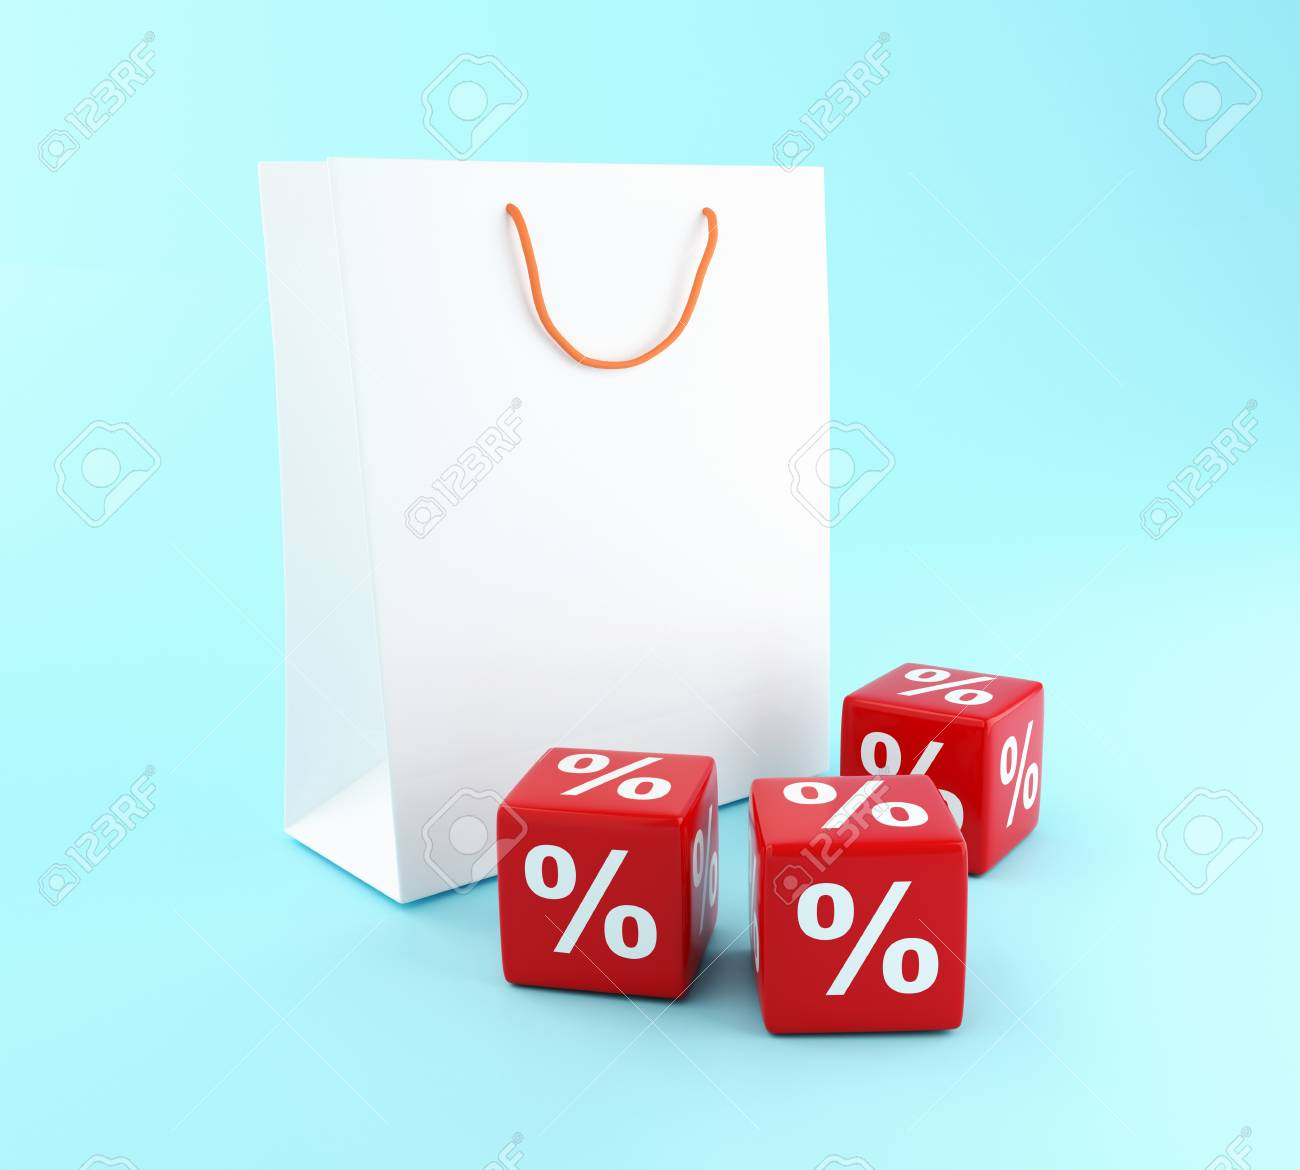 5f7944e4f05 3D Illustration. Shopping bag and red Discount icons. Sale concept. Stock  Illustration -